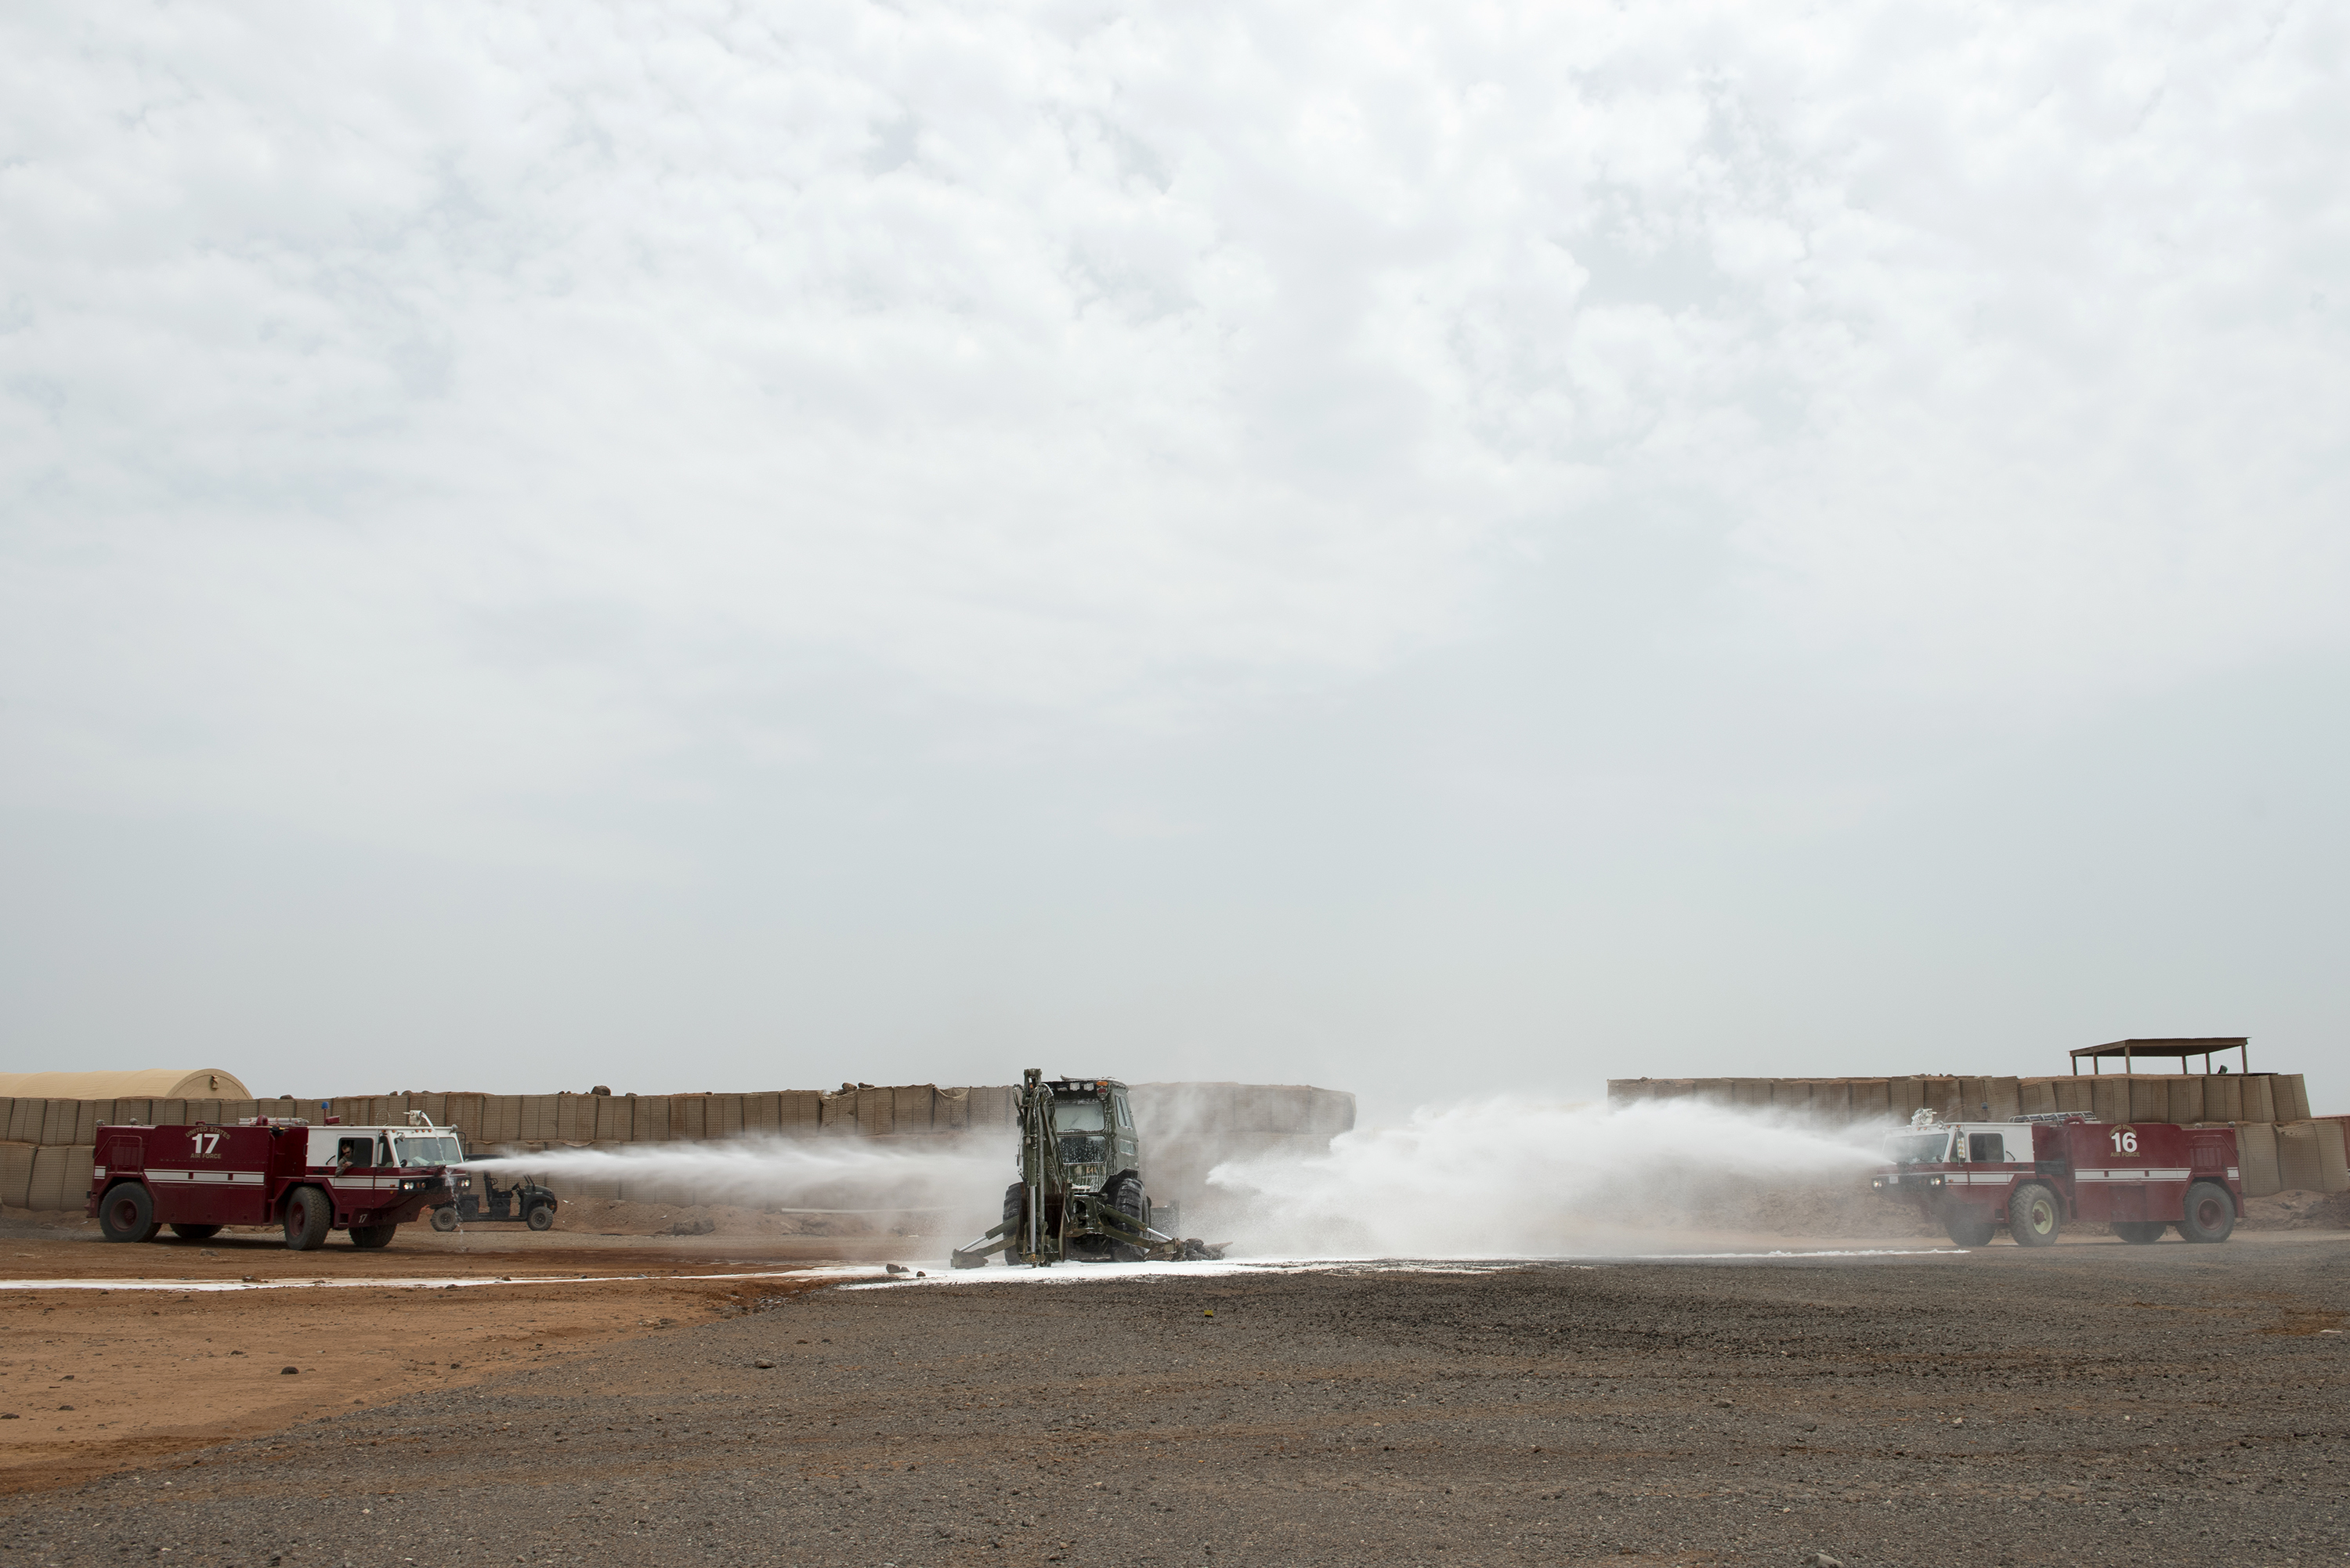 U.S. Air Force firefighters with the 449th Air Expeditionary Group and Combined Joint Task Force Horn of Africa use a P-19B fire truck to fight a simulated fire during training, outside Djibouti City, Djibouti, Aug. 20, 2018. The Airmen continually perform scenario based training tasks in order to maintain their skills. (U.S. Air National Guard photo by Master Sgt. Sarah Mattison) (A portion of the background was blurred for security purposes)